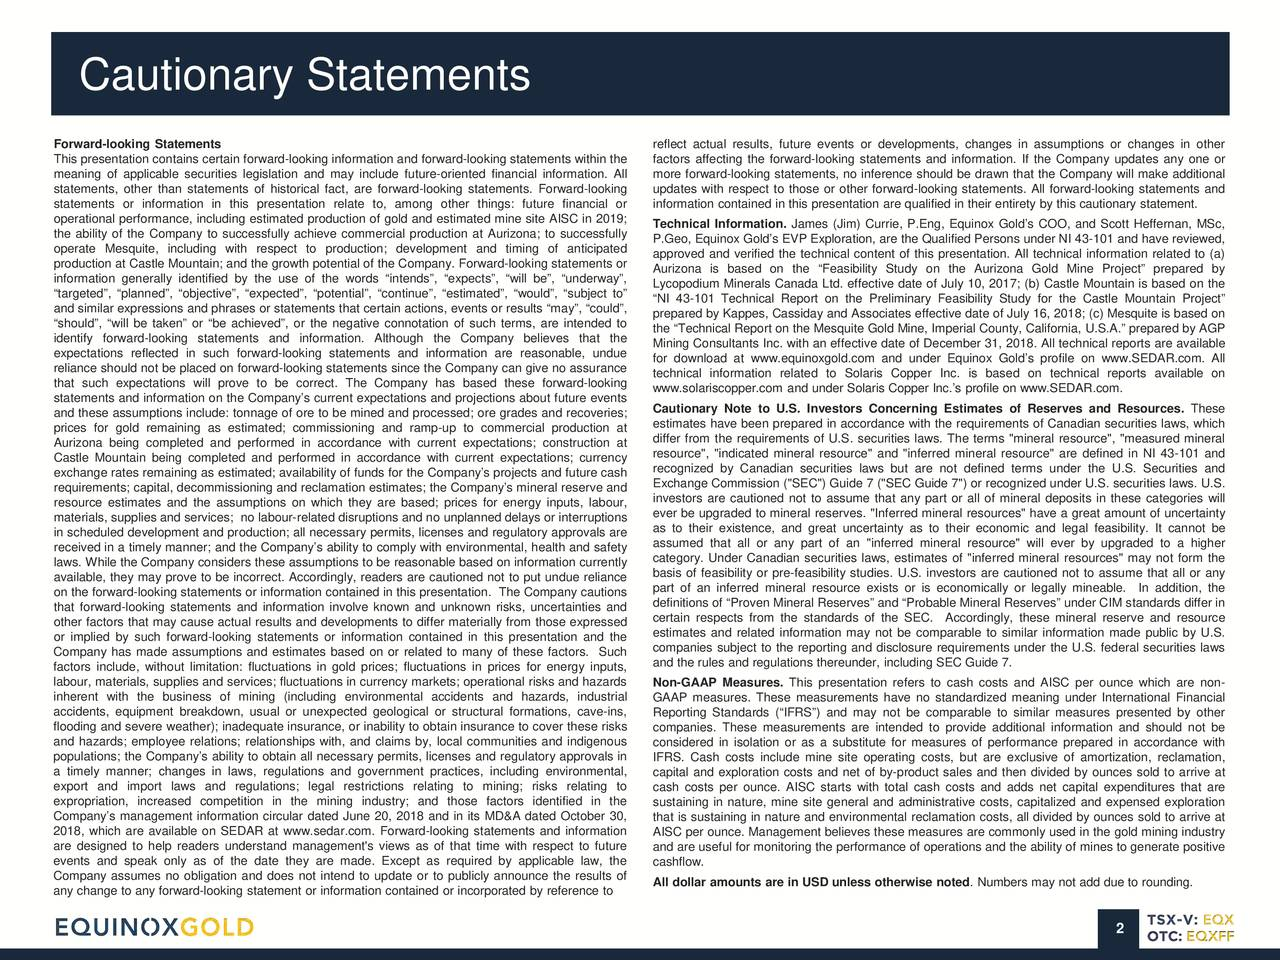 """Forward-looking Statements reflect actual results, future events or developments, changes in assumptions or changes in other This presentation contains certain forward-looking information and forward-looking statements within the factors affecting the forward-looking statements and information. If the Company updates any one or meaning of applicable securities legislation and may include future-oriented financial information. All more forward-looking statements, no inference should be drawn that the Company will make additional statements, other than statements of historical fact, are forward-looking statements. Forward-looking updates with respect to those or other forward-looking statements. All forward-looking statements and statements or information in this presentation relate to, among other things: future financial or information contained in this presentation are qualified in their entirety by this cautionary statement. operational performance, including estimated production of gold and estimated mine site AISC in 2019; Technical Information. James (Jim) Currie, P.Eng, Equinox Gold's COO, and Scott Heffernan, MSc, the ability of the Company to successfully achieve commercial production at Aurizona; to successfully P.Geo, Equinox Gold's EVP Exploration, are the Qualified Persons under NI 43-101 and have reviewed, operate Mesquite, including with respect to production; development and timing of anticipated approved and verified the technical content of this presentation. All technical information related to (a) production at Castle Mountain; and the growth potential of the Company. Forward-looking statements or Aurizona is based on the """"Feasibility Study on the Aurizona Gold Mine Project"""" prepared by information generally identified by the use of the words """"intends"""", """"expects"""", """"will be"""", """"underway"""", Lycopodium Minerals Canada Ltd. effective date of July 10, 2017; (b) Castle Mountain is based on the """"targeted"""", """"planned"""", """"objective"""", """"expected"""", """"potential"""", """""""